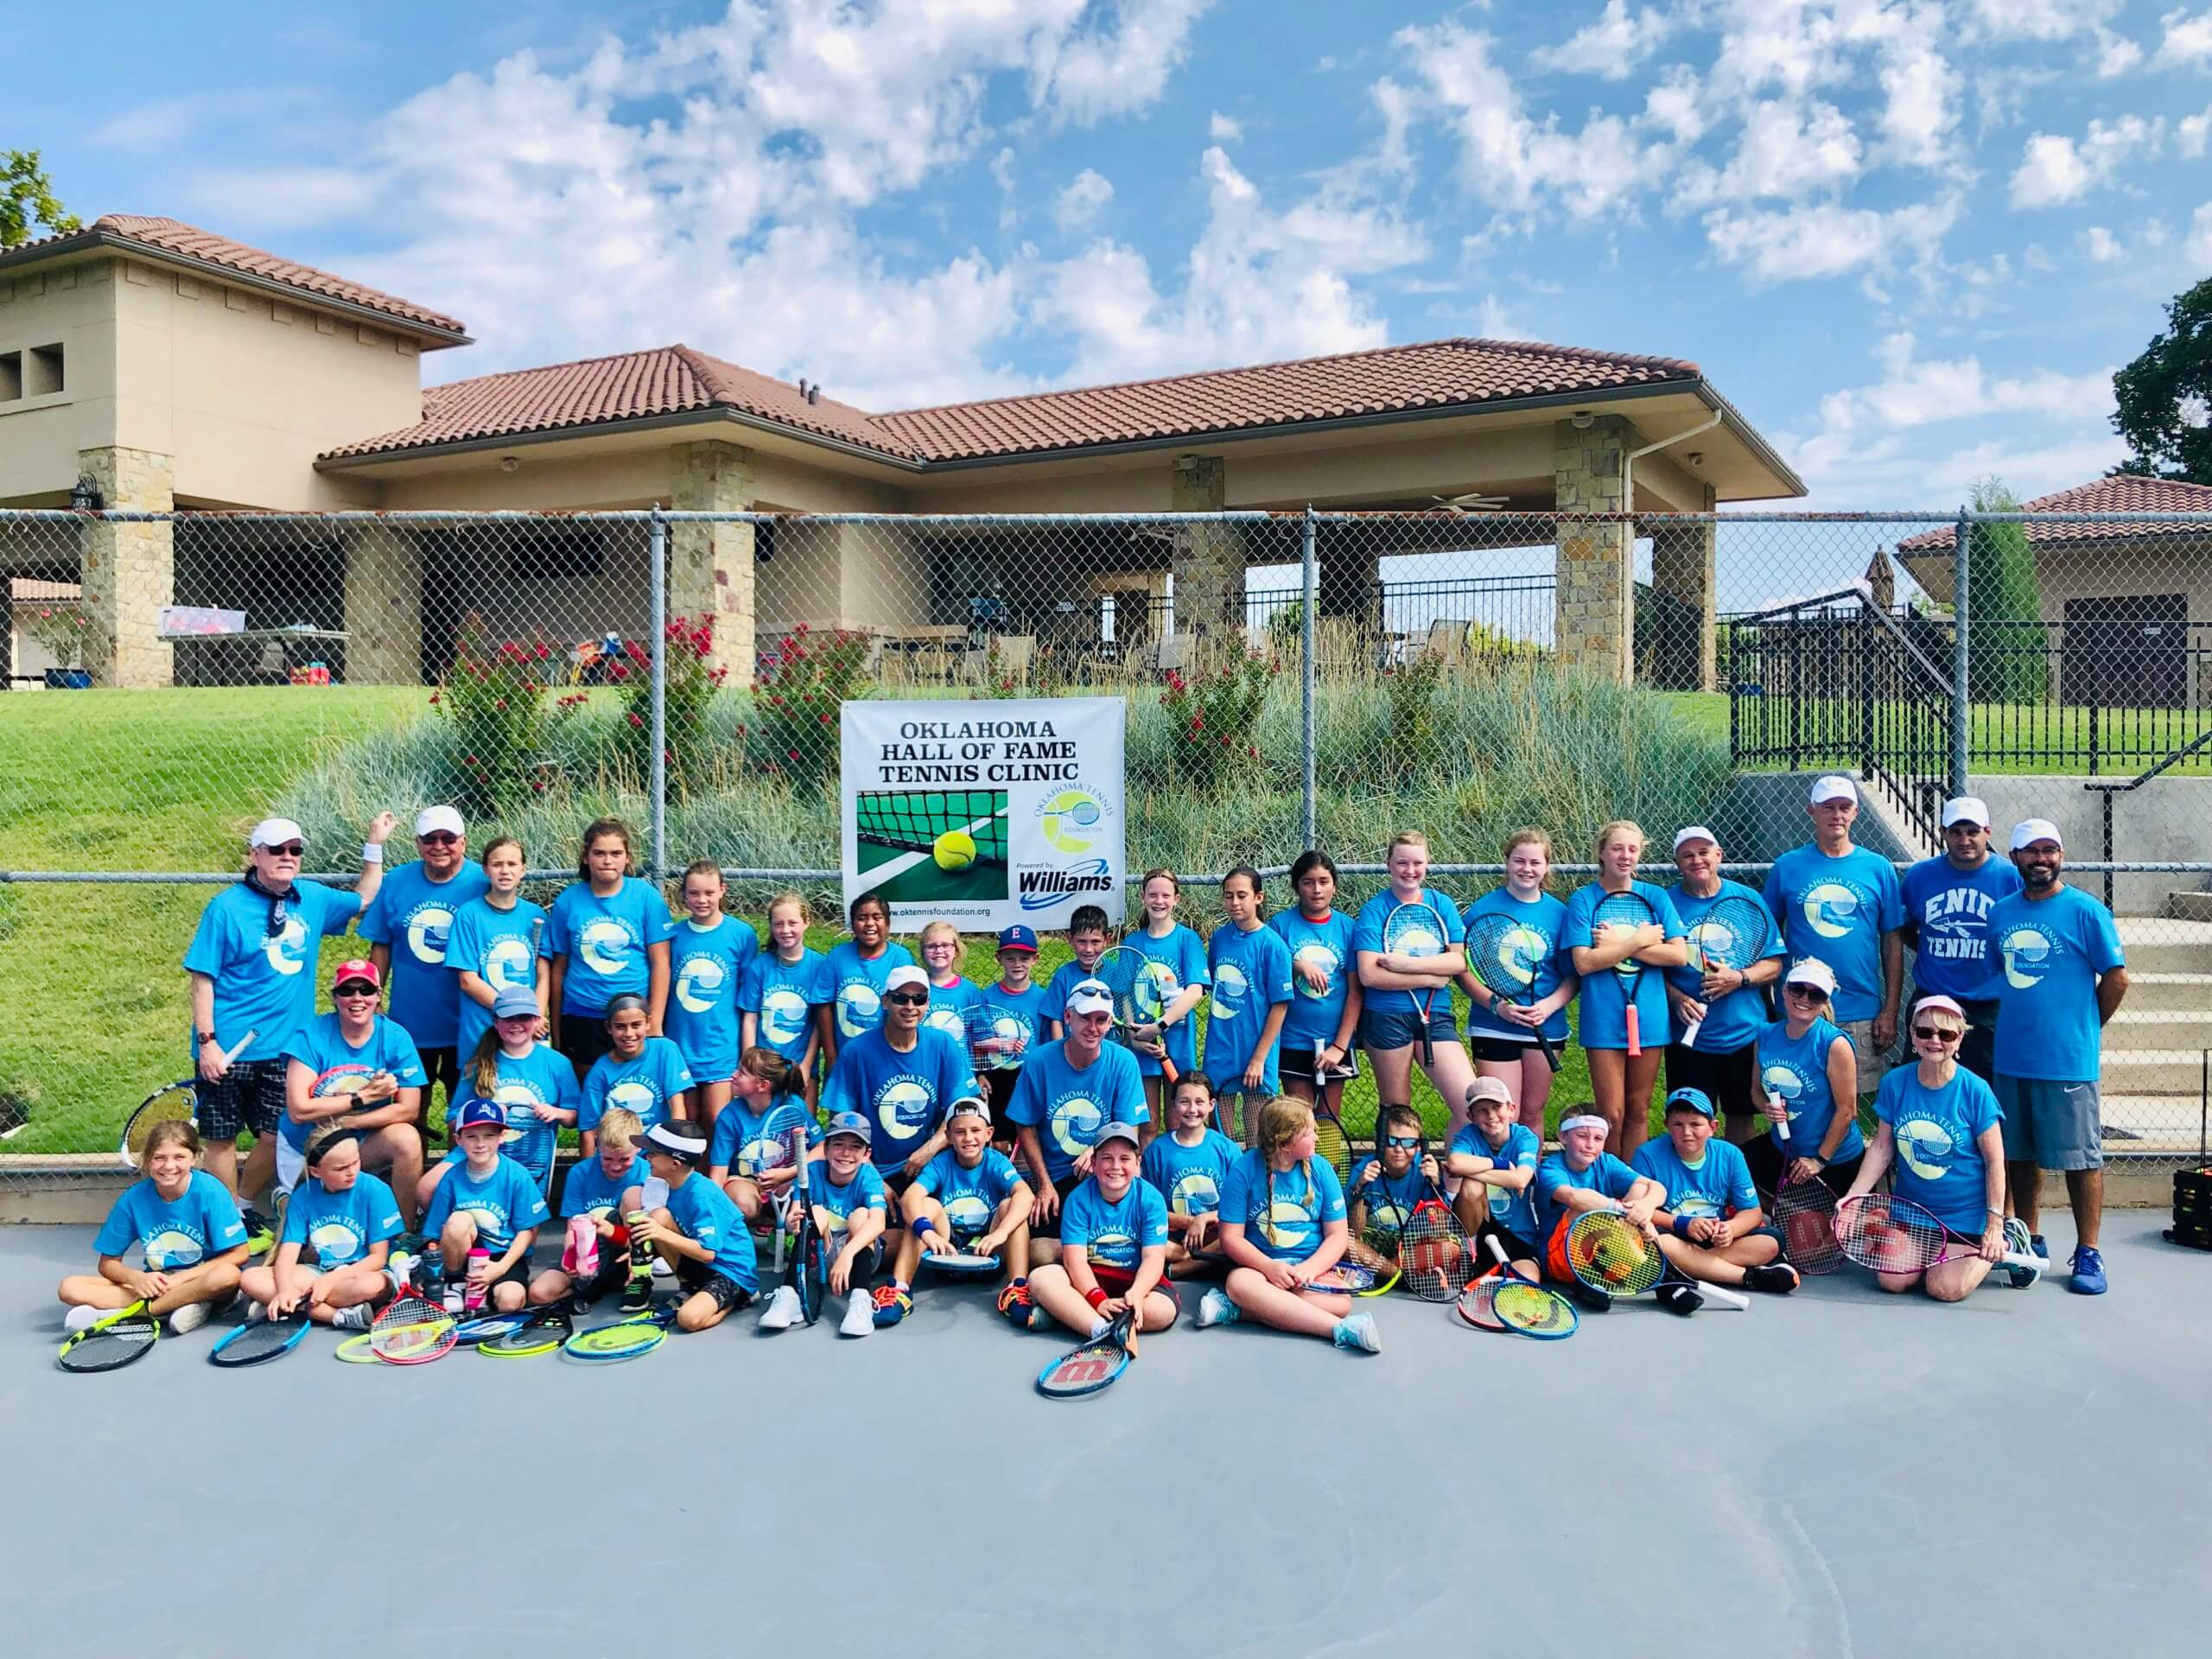 2019 Oklahoma Tennis Hall of Fame Clinic in Enid, OK Garfield County